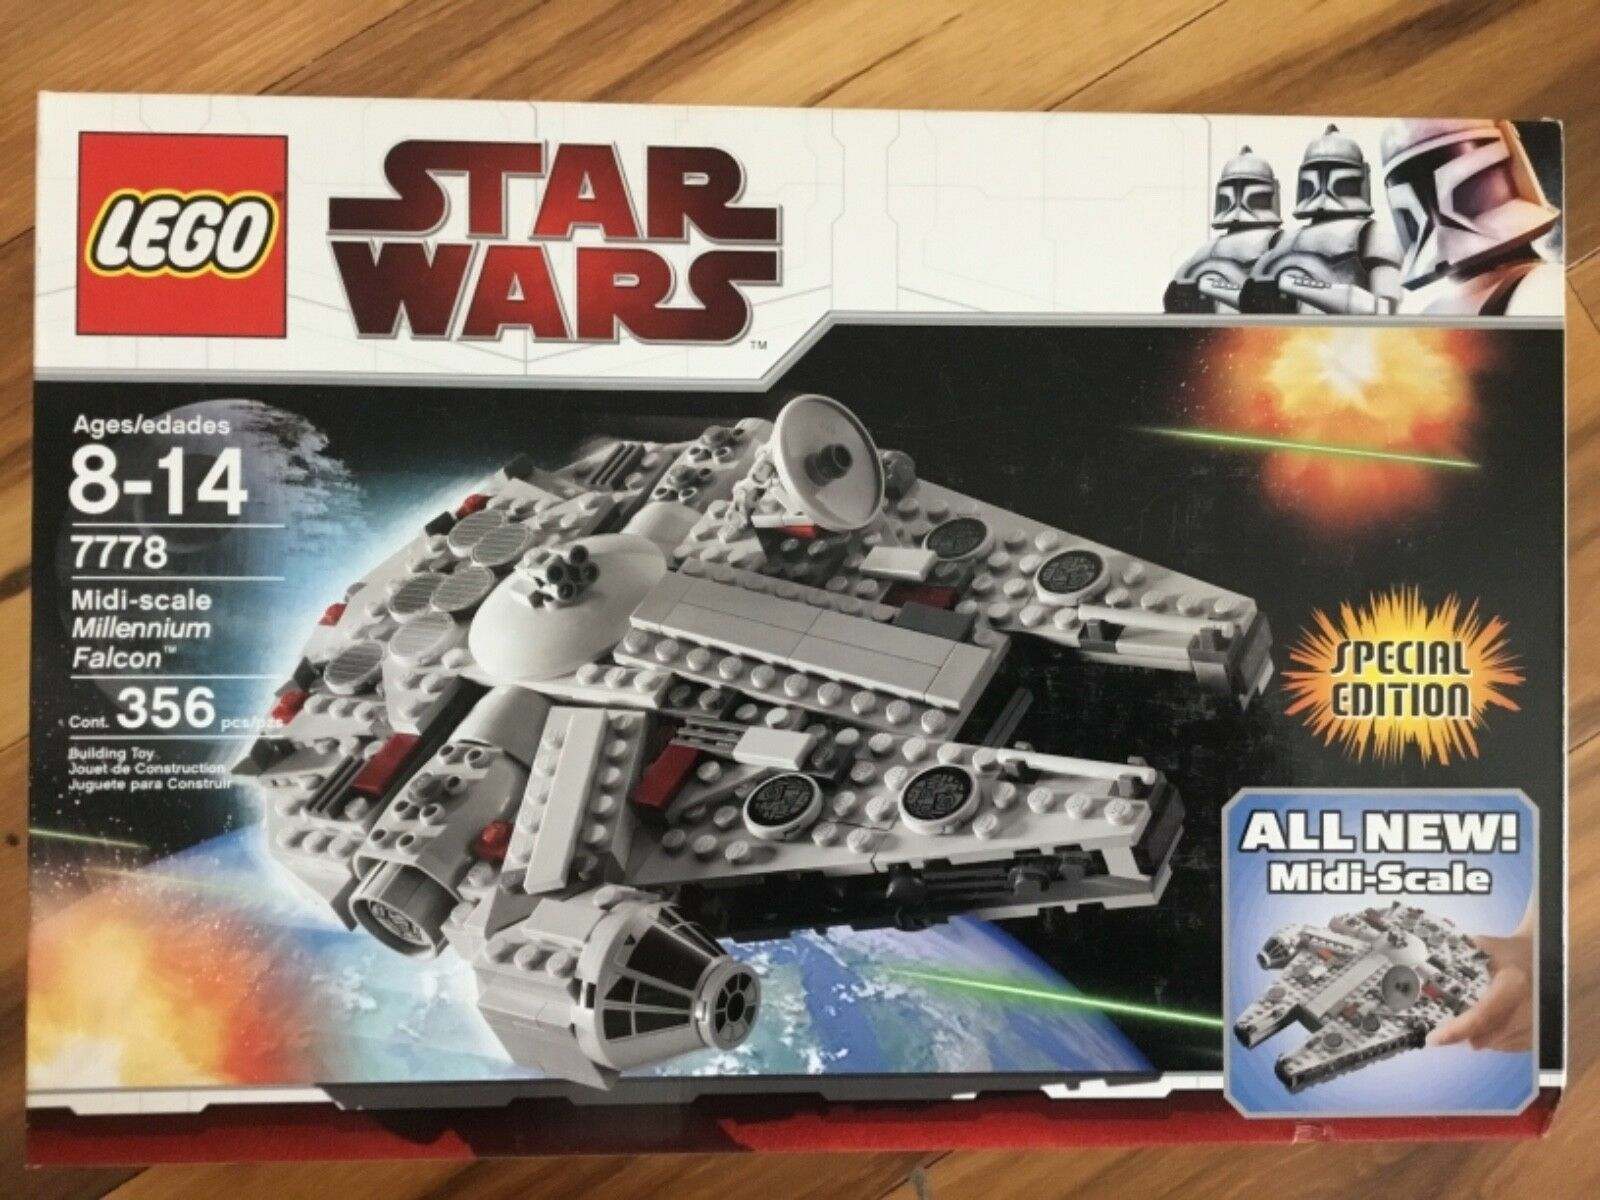 LEGO Star Wars Midi-scale Millennium Falcon BRAND NEW in box ages 8-14 NIB